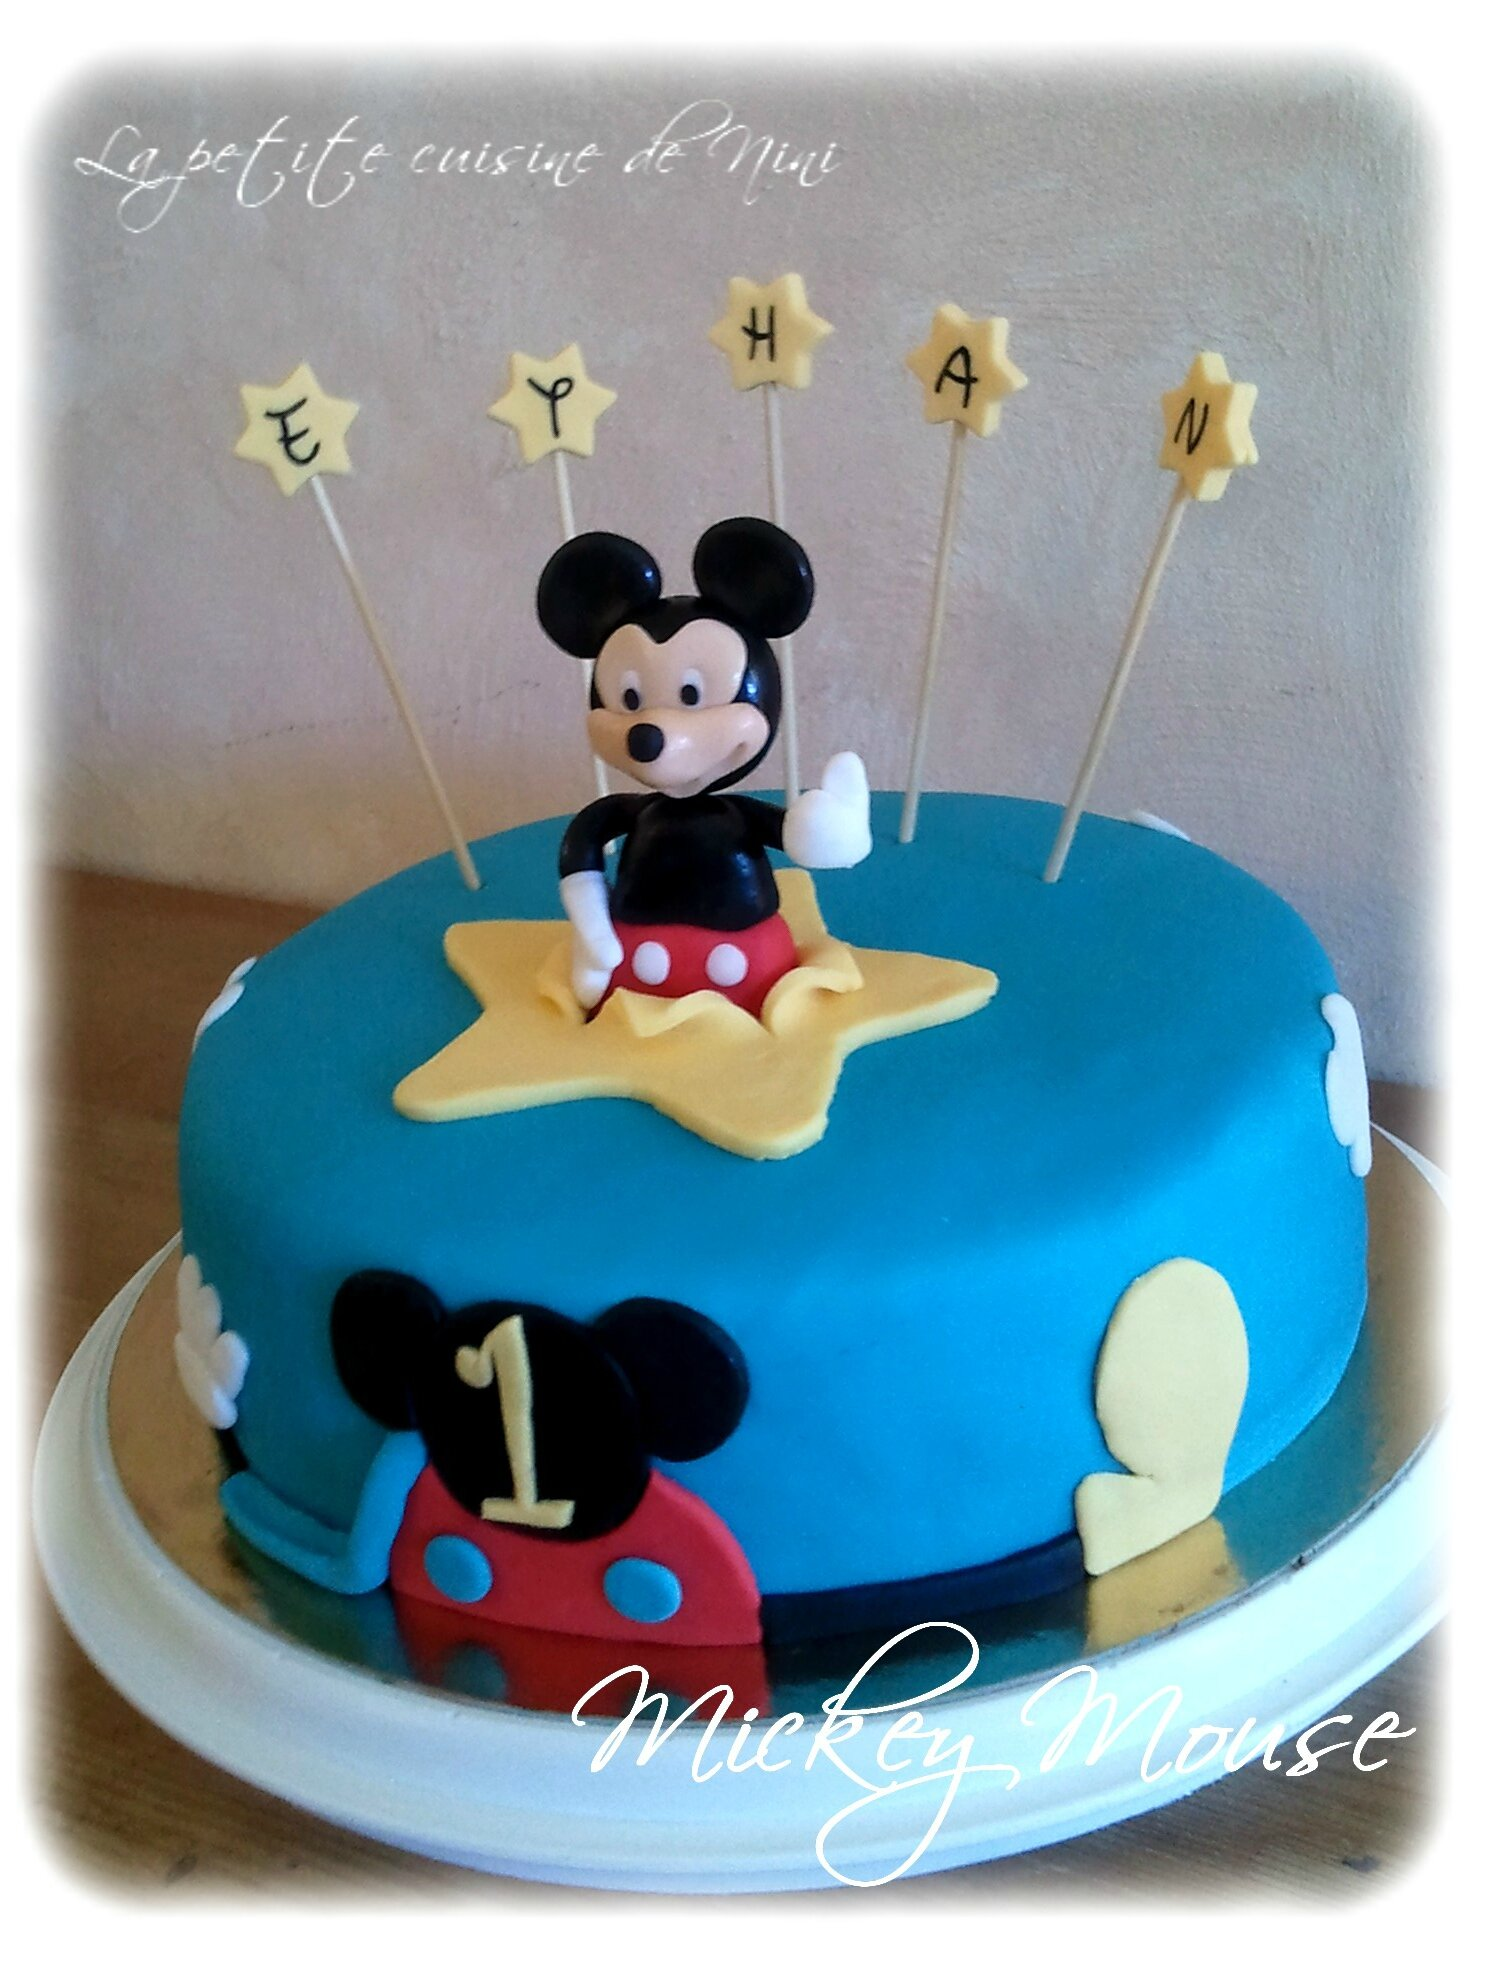 anniversaire24 gateau anniversaire mickey. Black Bedroom Furniture Sets. Home Design Ideas